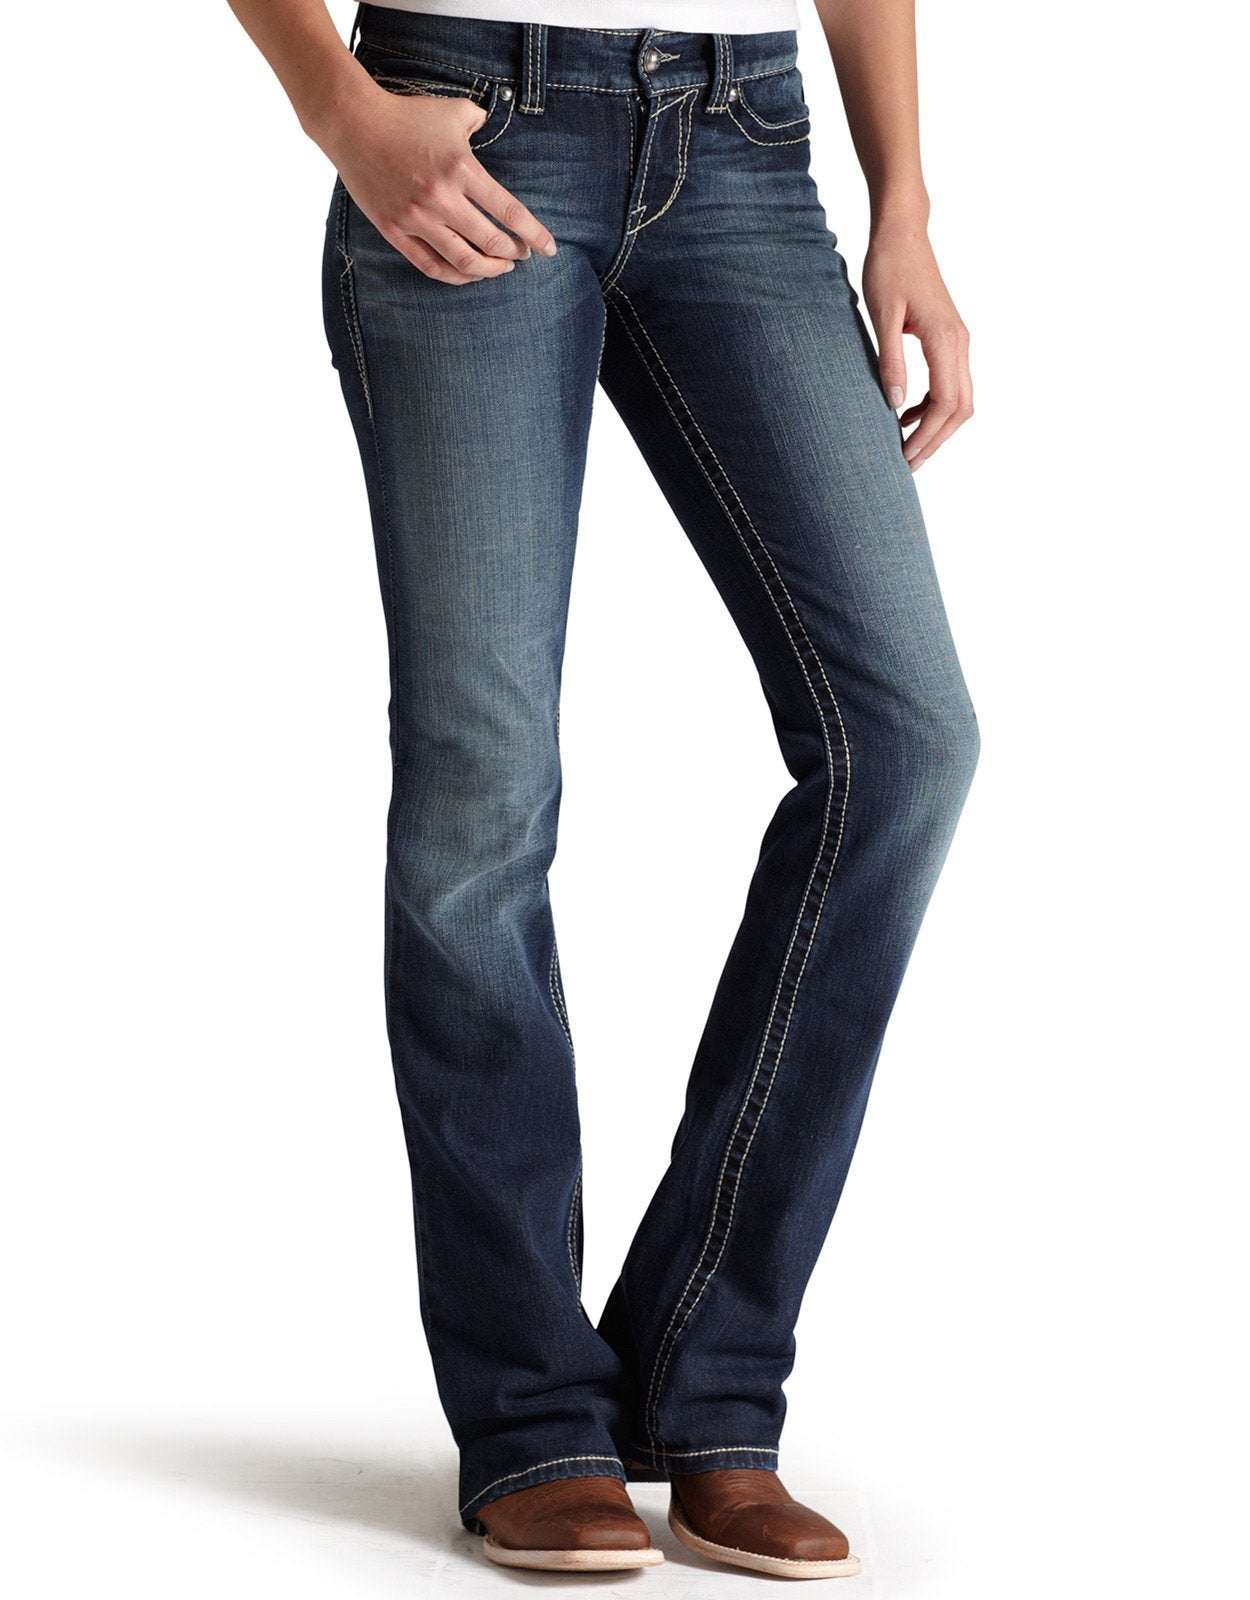 a1bacbbf2c412 Ariat Womens REAL Bootcut Riding Jean 10011683 - Clermont Agencies